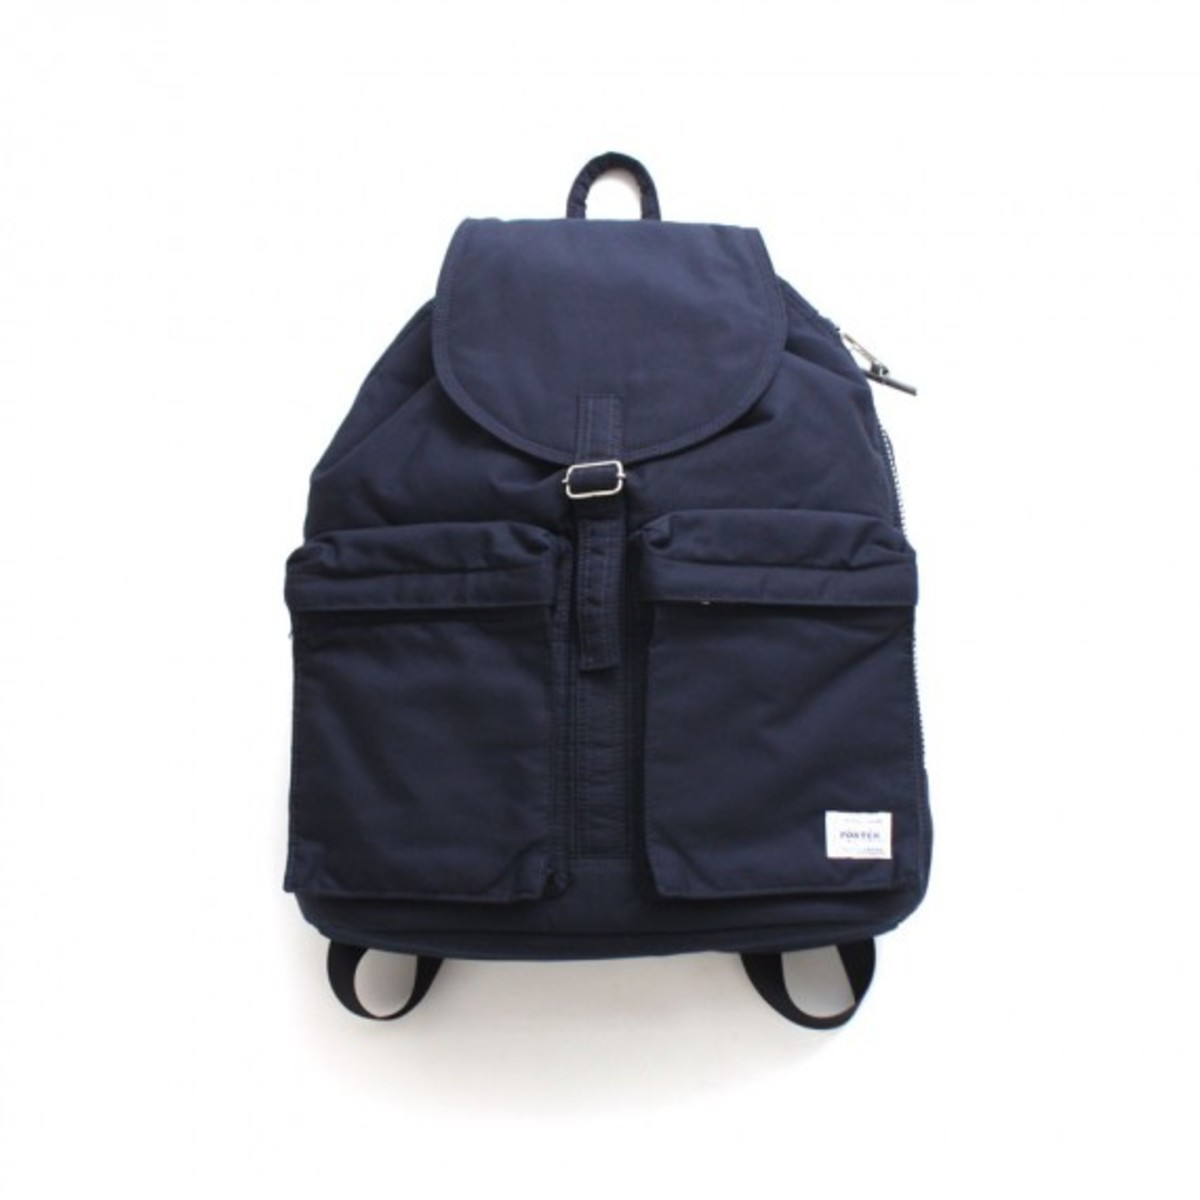 mighty-mac-porter-aro-deck-rucksack-01